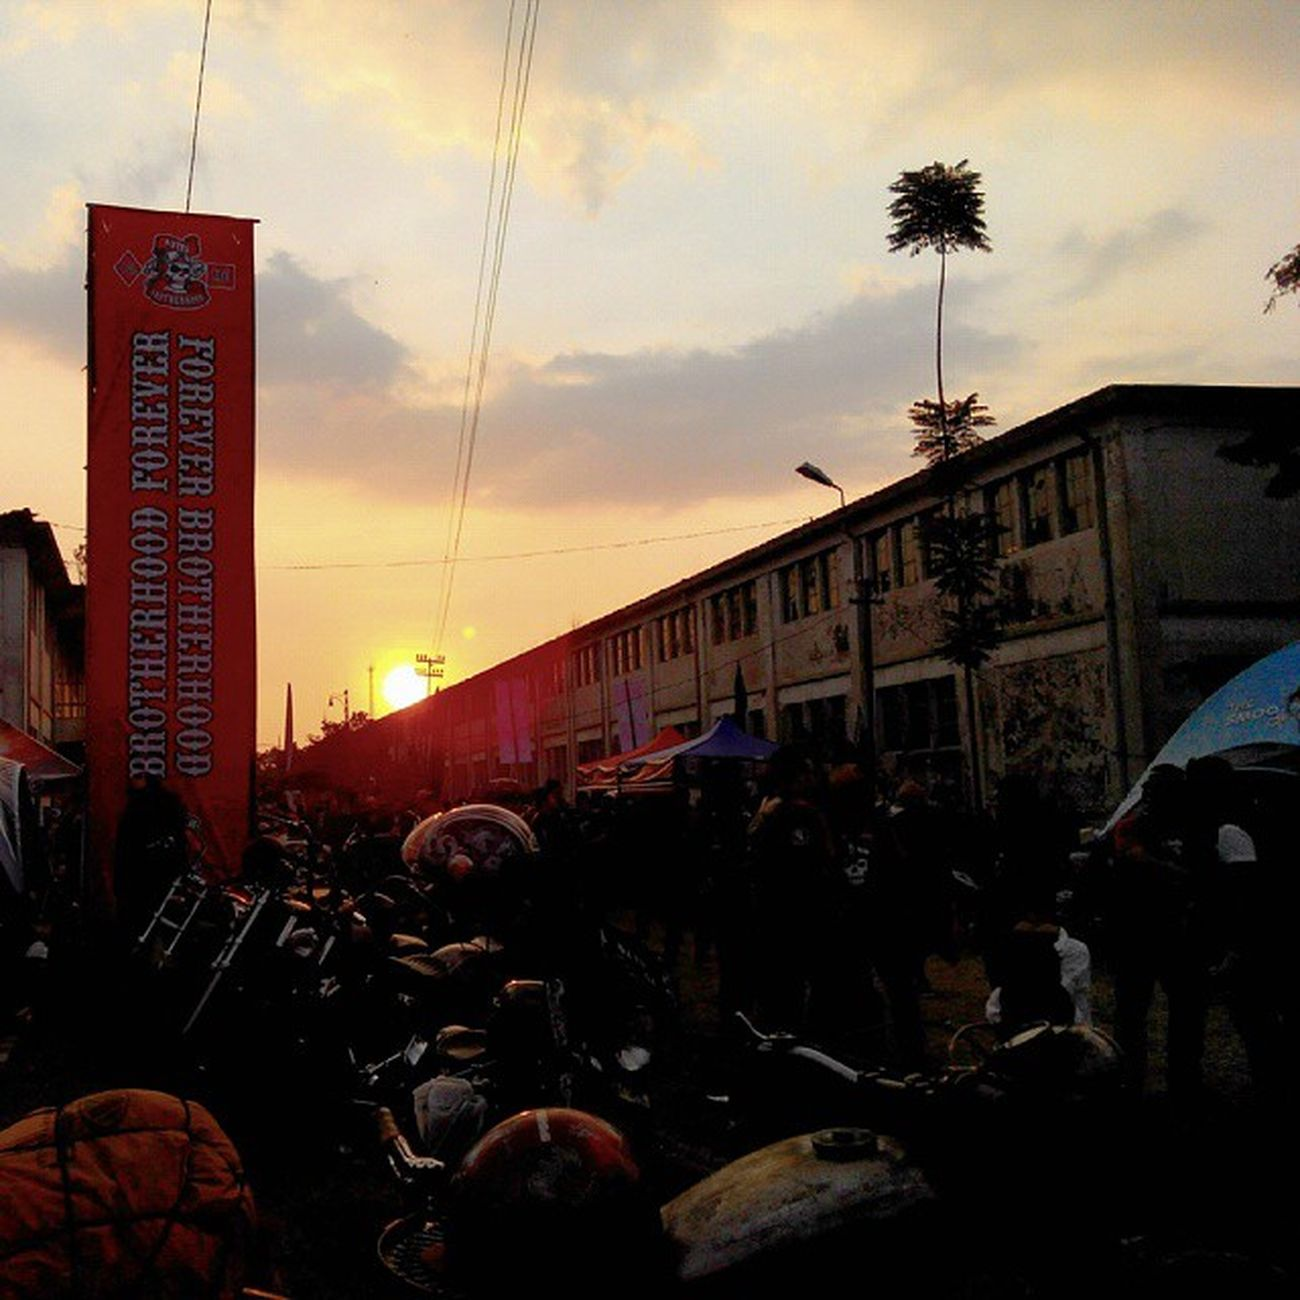 Sunset Sunrise_and_sunsets at LongLive Bbmc 2662 Brotherhood 27thbirthday 27thAnniversary 27thbbmc Pridetoridetheheritages Classic is still the winner ! Classicbike Custombike INDONESIA Bandung Lzybstrd Lenovotography Photophone  Photooftheday Bike Oldbike Costumbike Streetlife Streetbike Besitua motorkustom ride ridepride respect proudandrespect